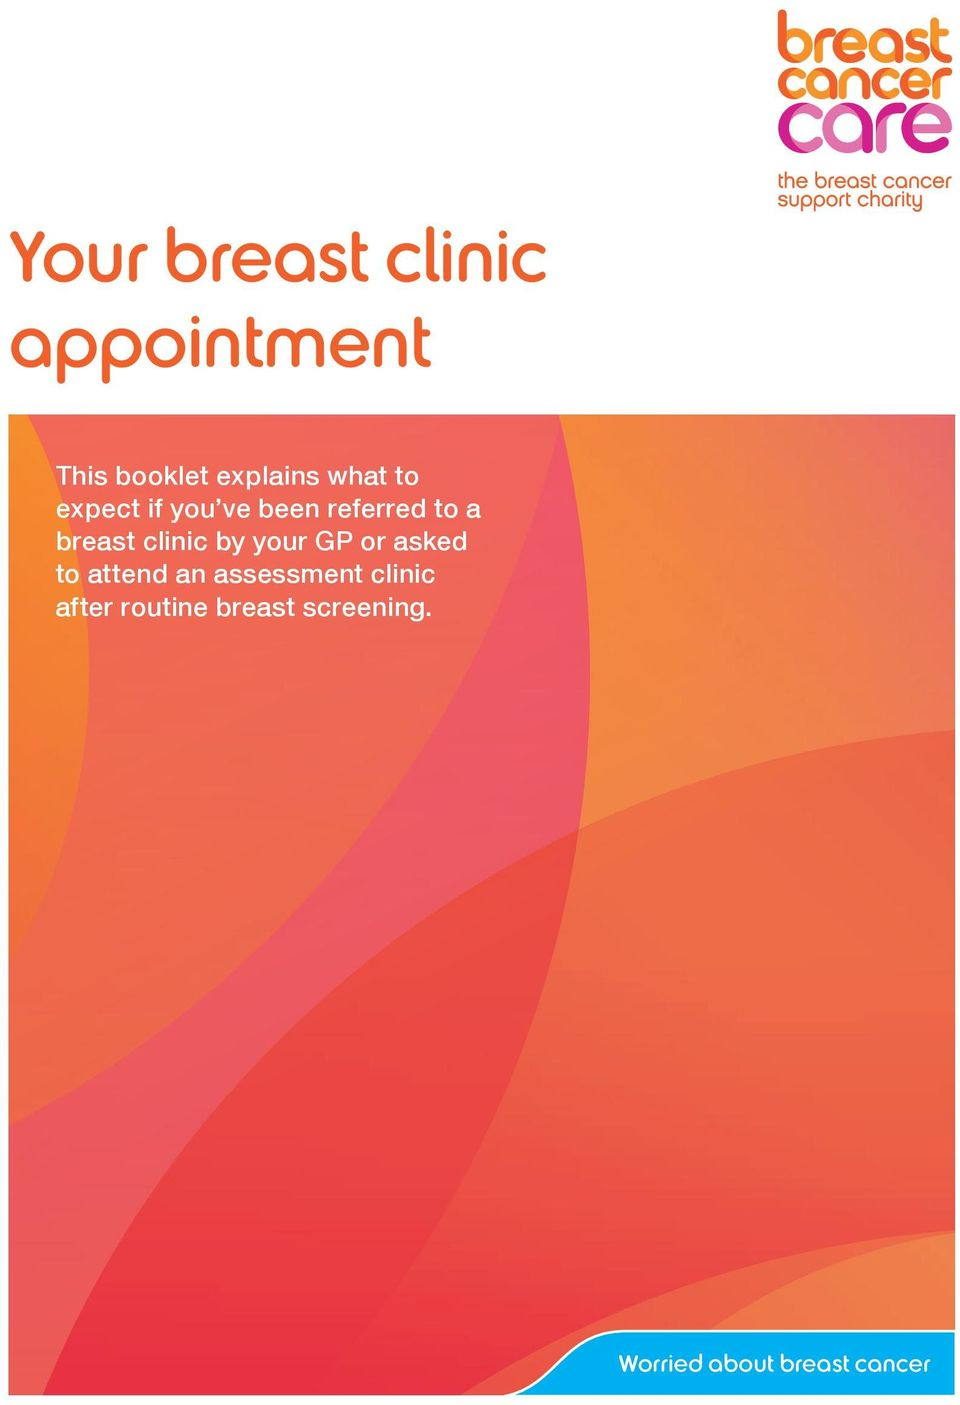 or asked to attend an assessment clinic after routine breast